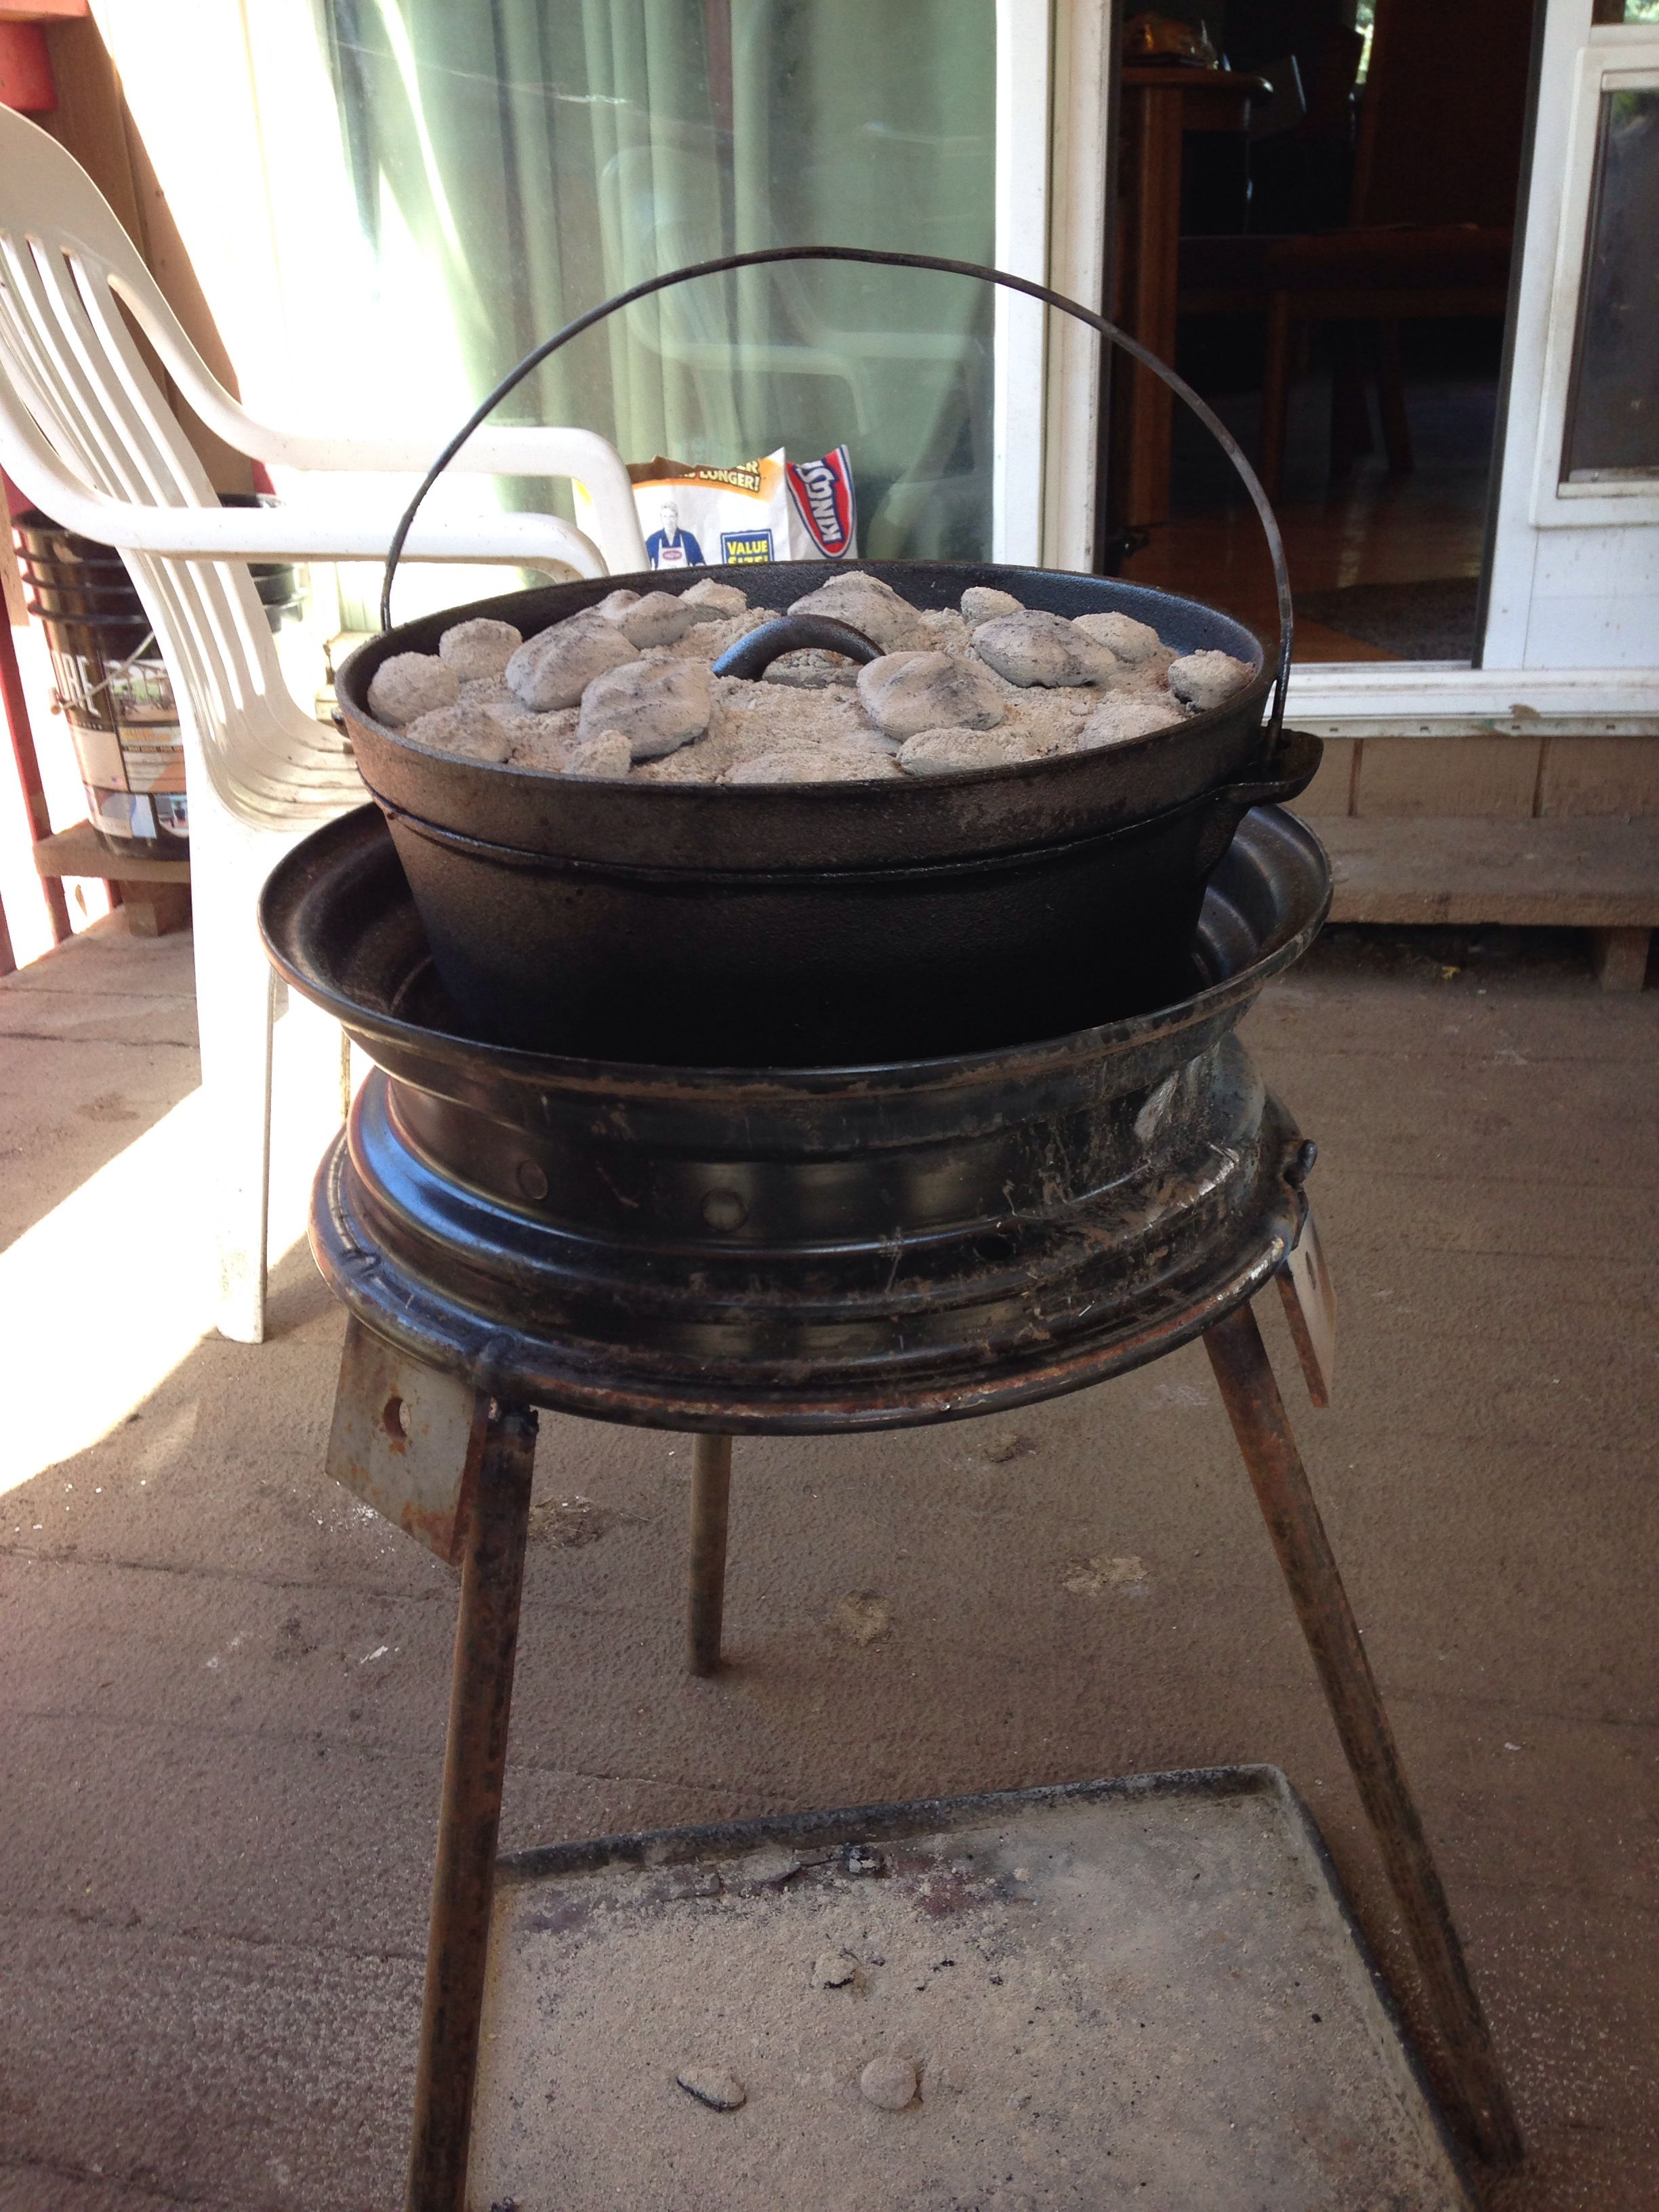 Cool Diy Old Tire Rim Dutch Oven Stand With Removable Legs Home Interior And Landscaping Spoatsignezvosmurscom